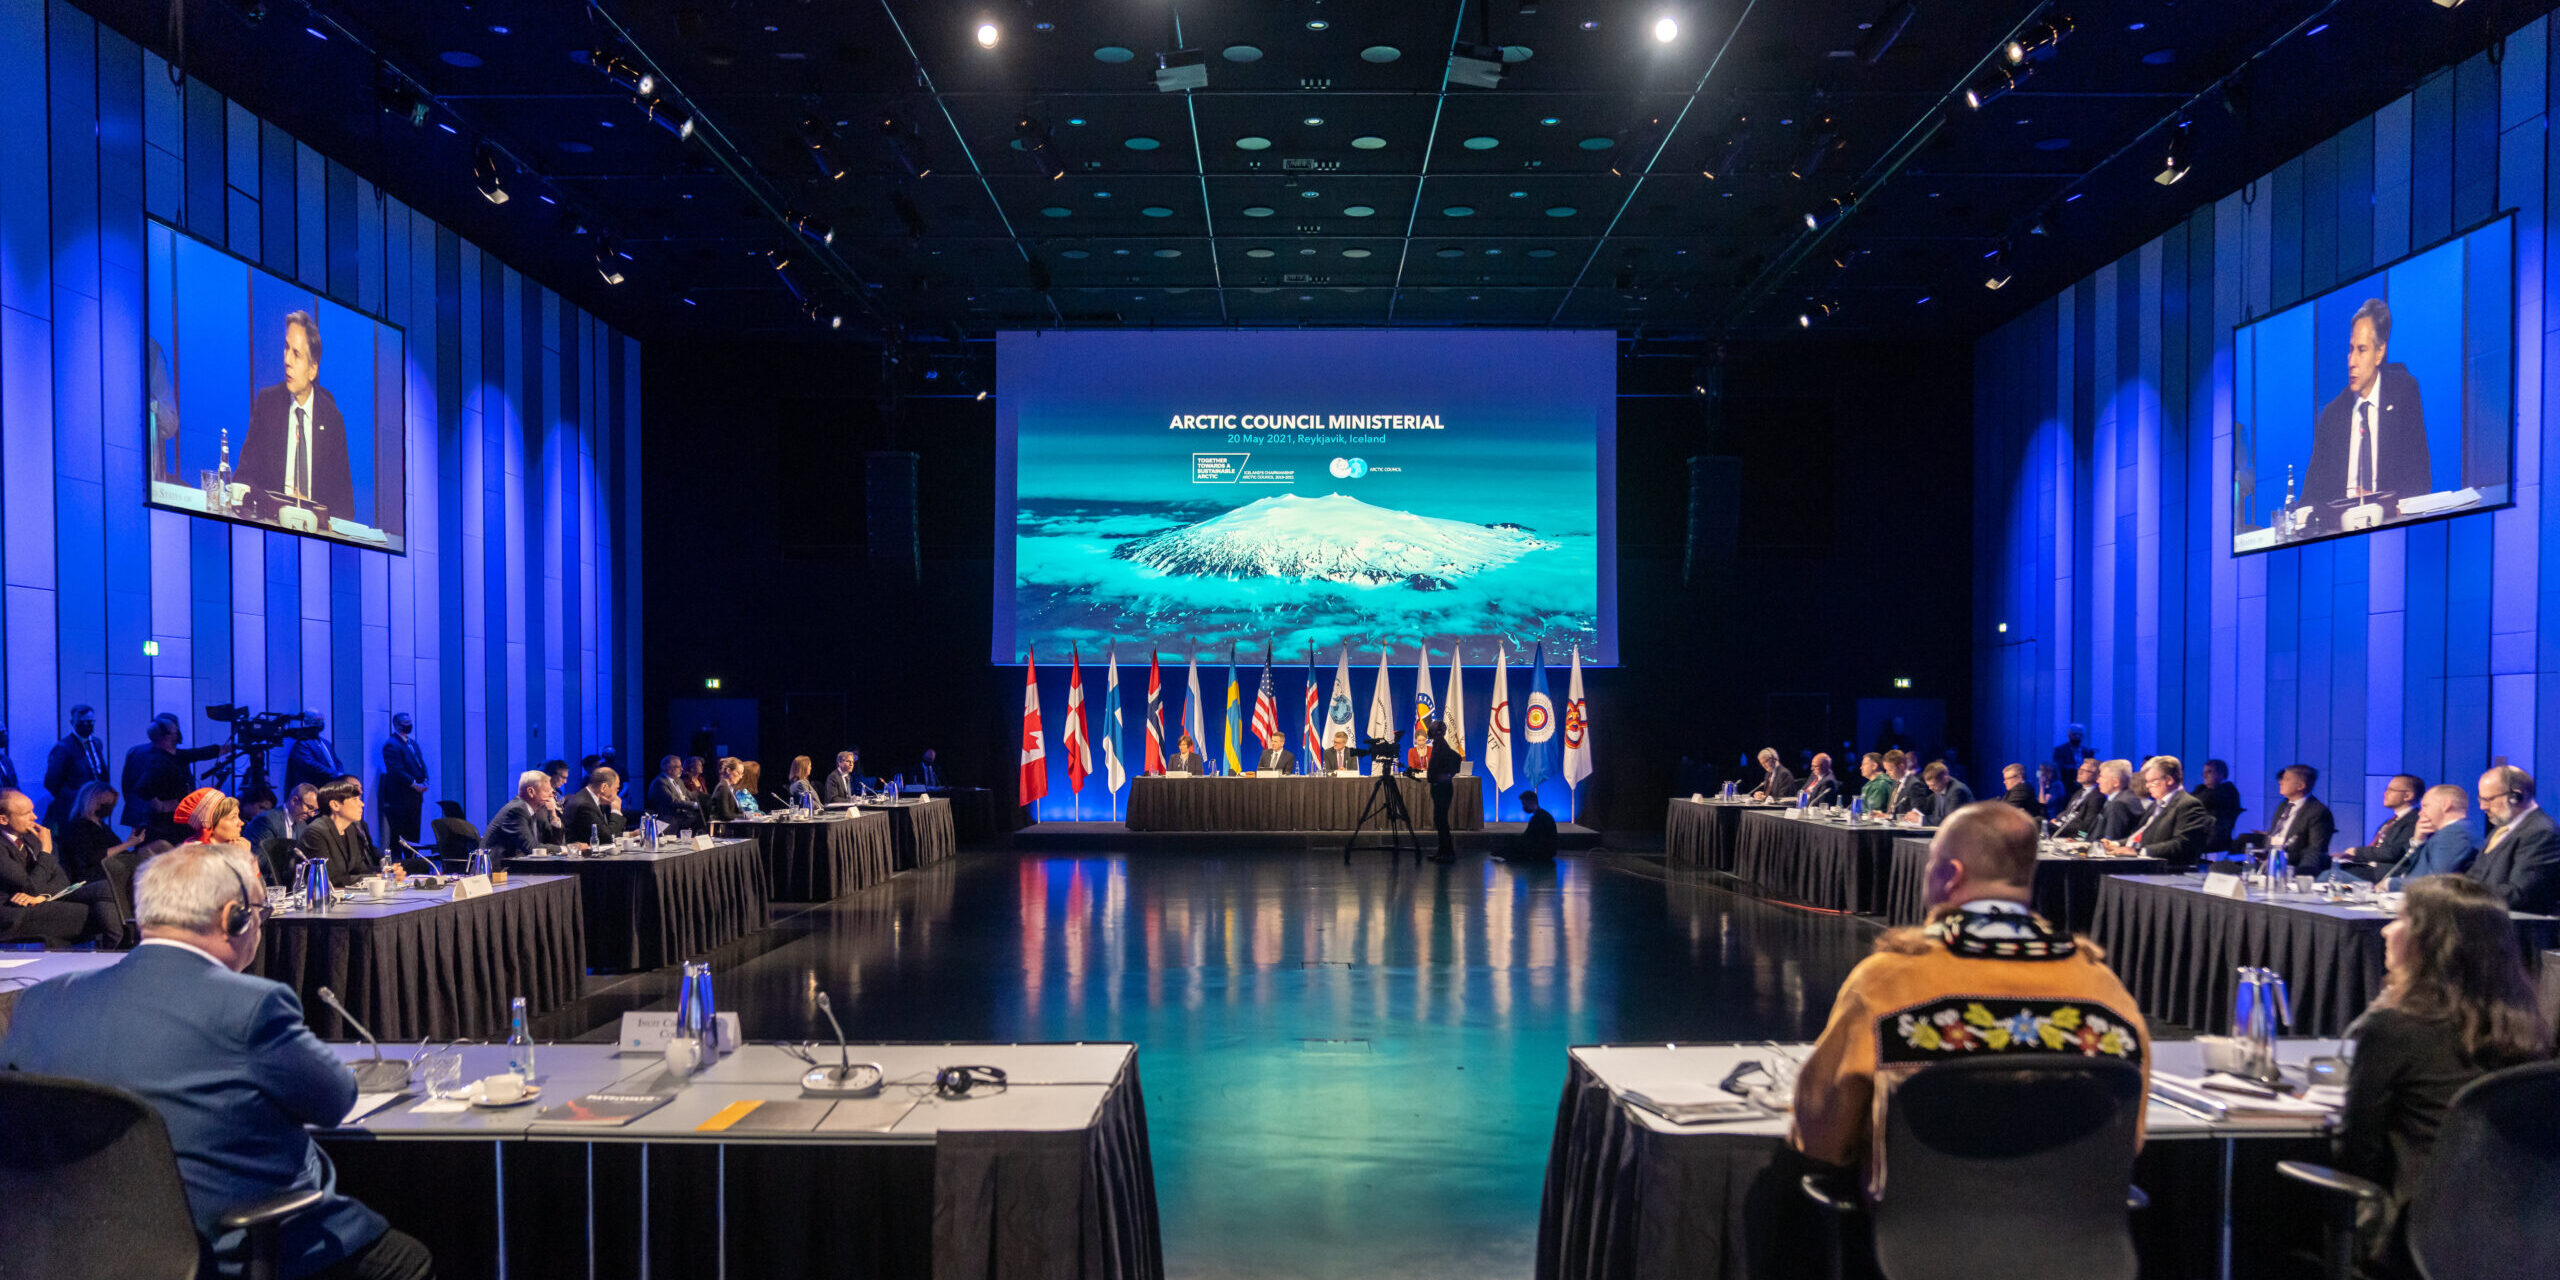 Secretary Blinken Participates In The Arctic Council Ministerial Meeting